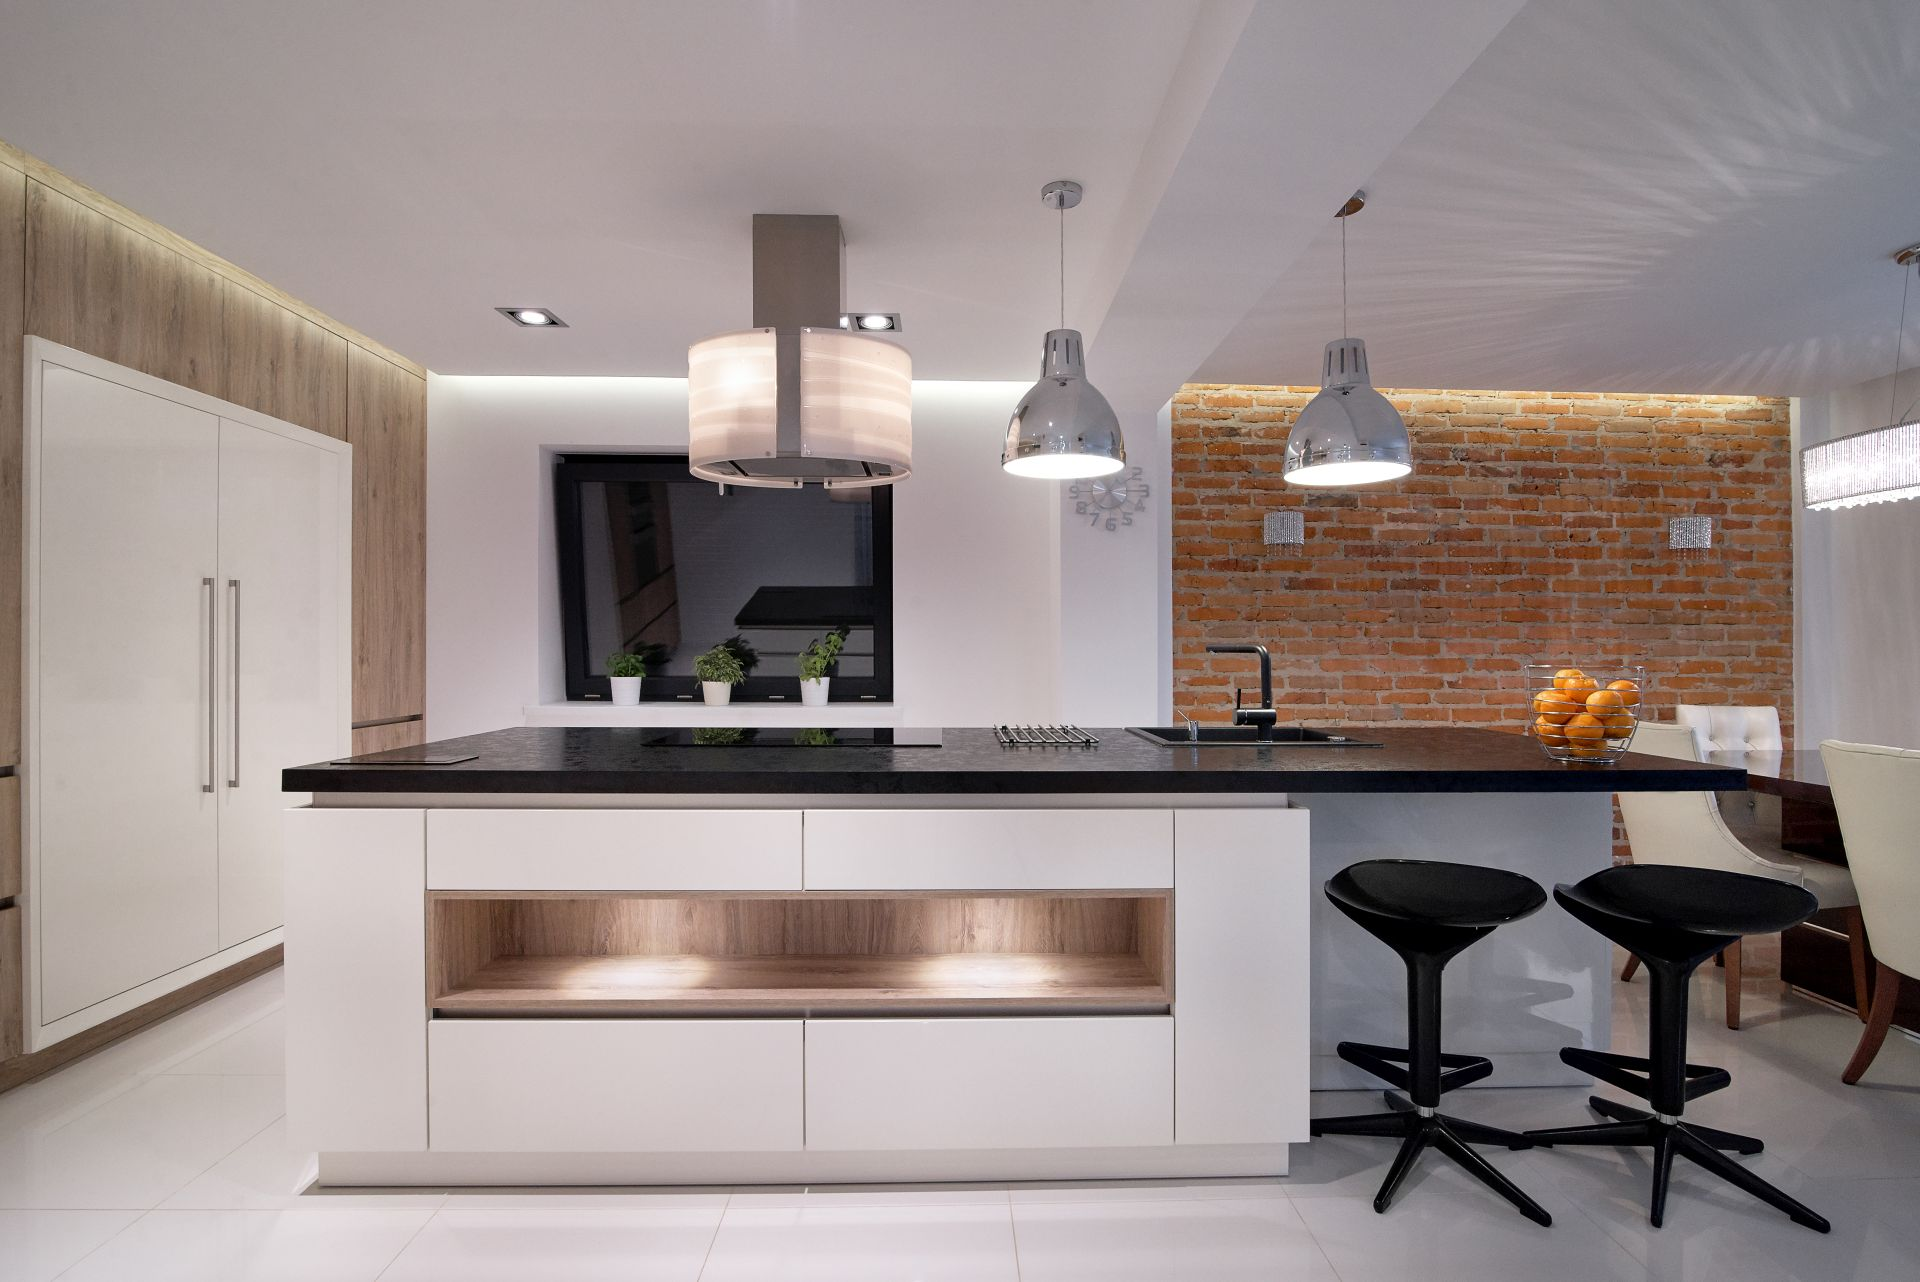 industrial-inspired kitchen